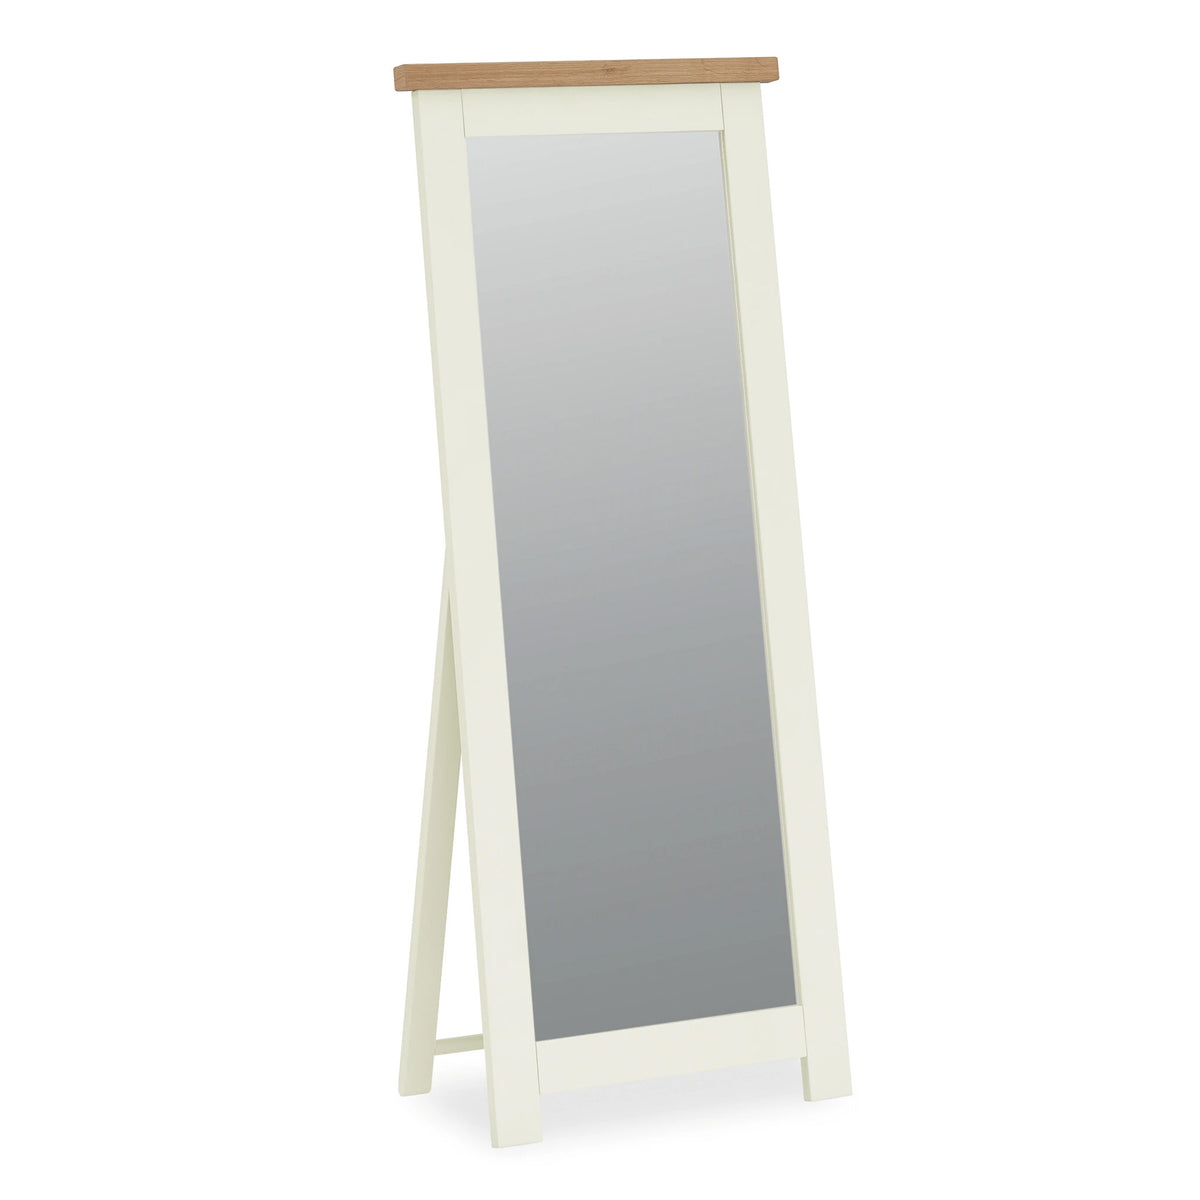 The Daymer Cream Tall Wooden French Cheval Bedroom Mirror from Roseland Furniture